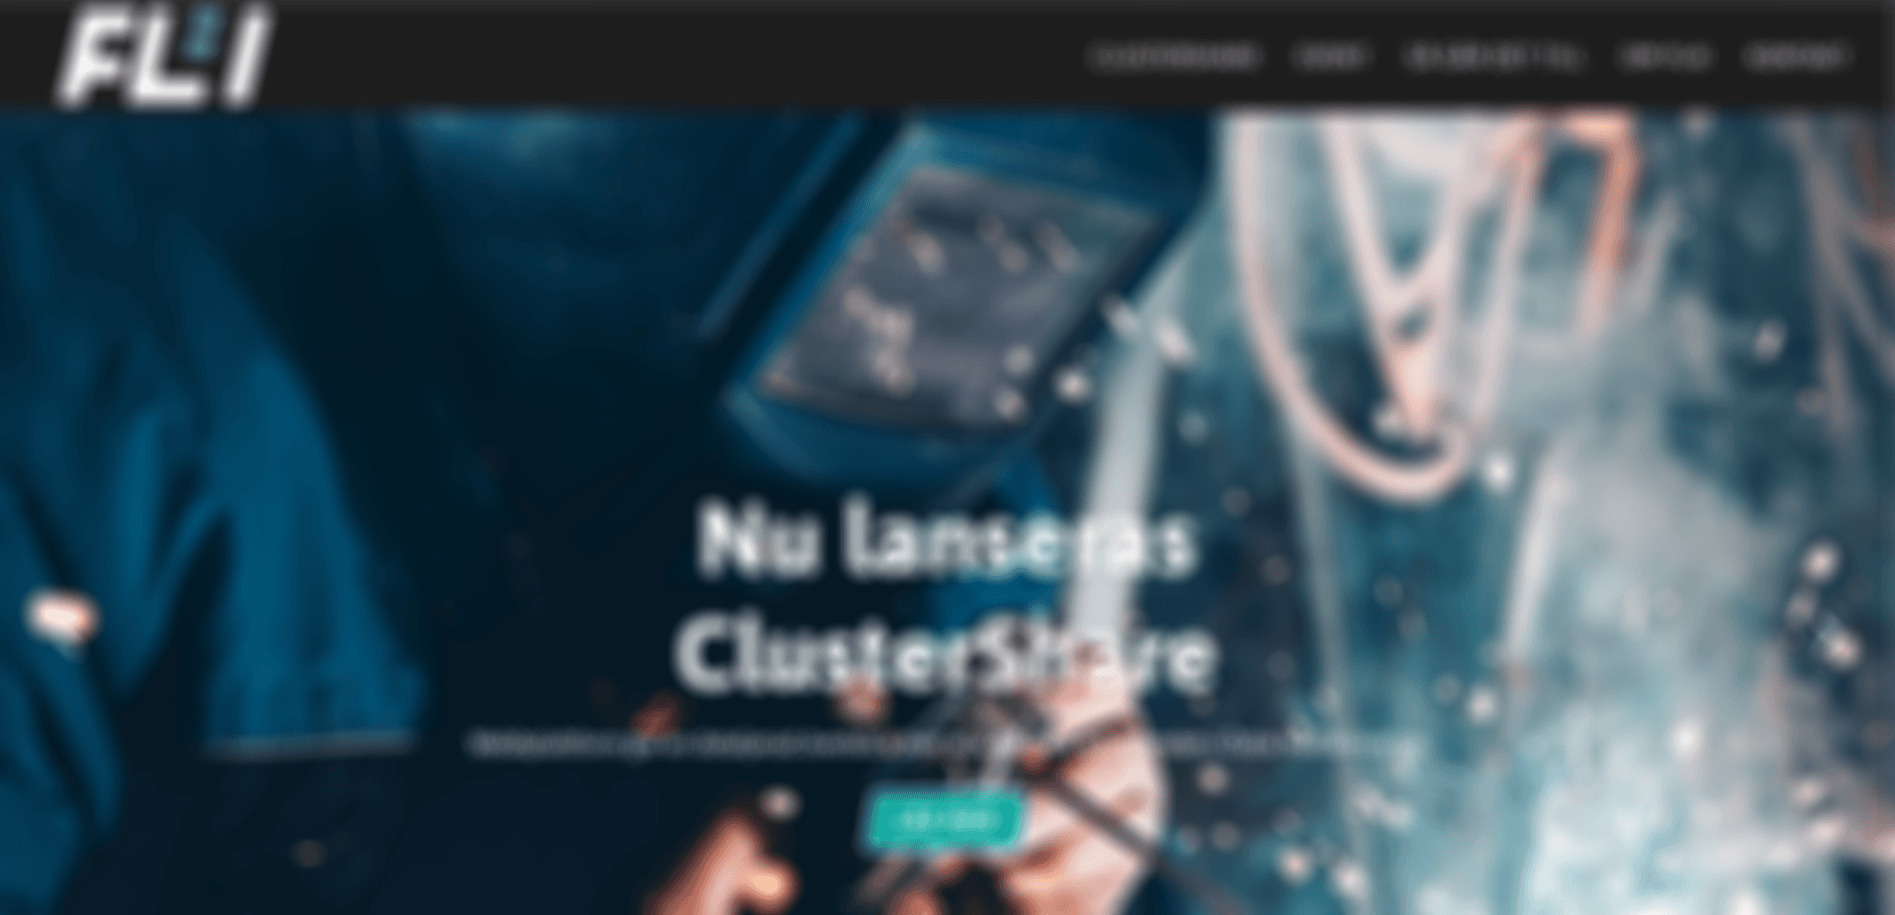 FL4i launches web platform for fast and efficient support for companies